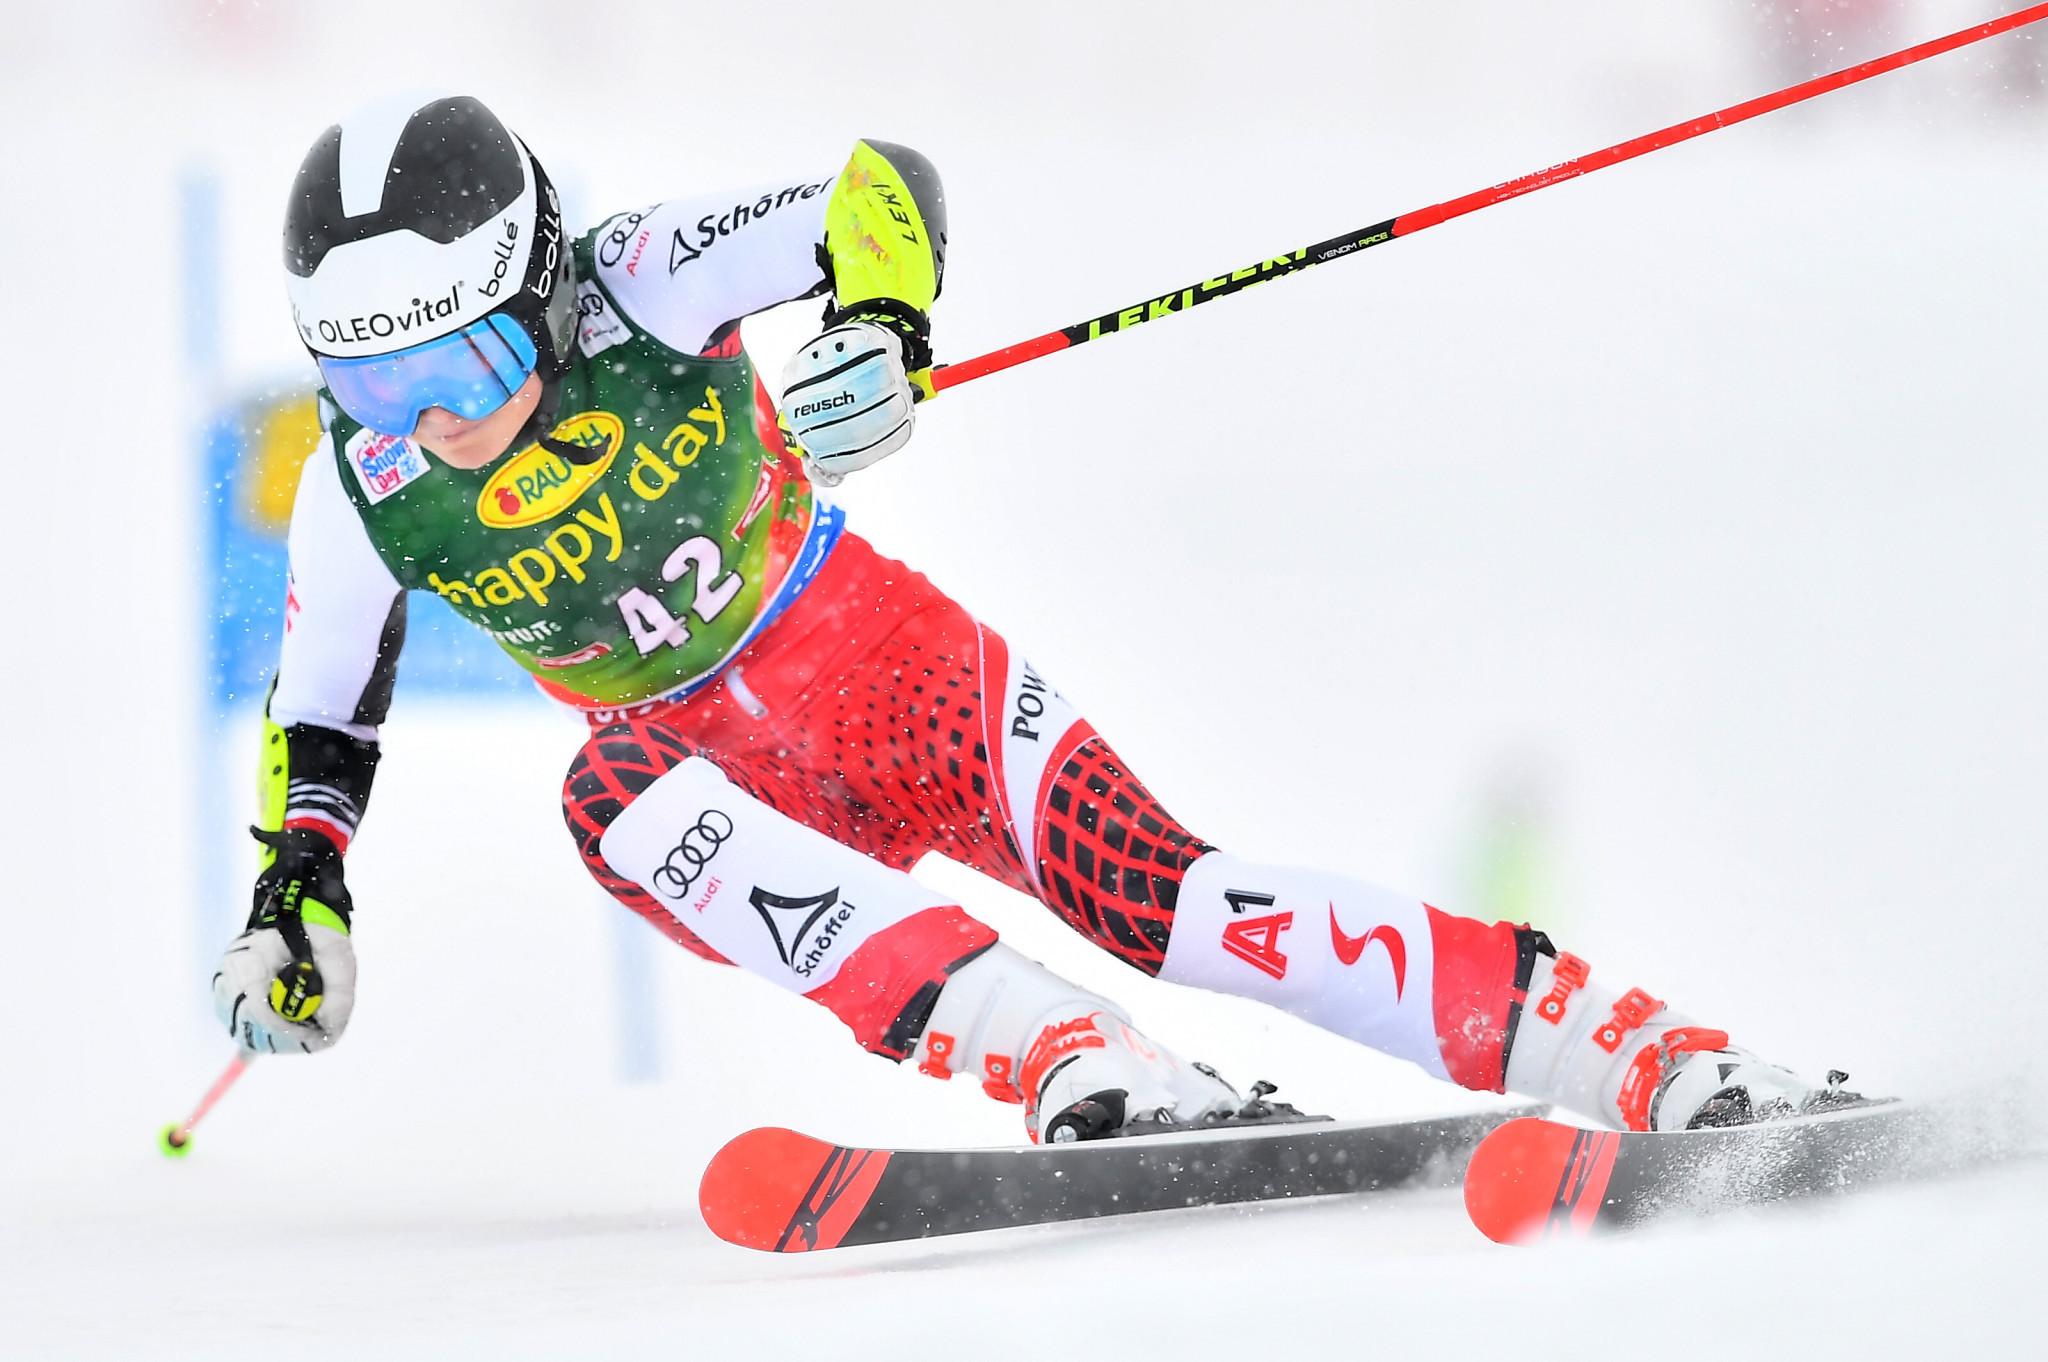 Austria's defending champion Julia Scheib could only finish fifth ©Getty Images